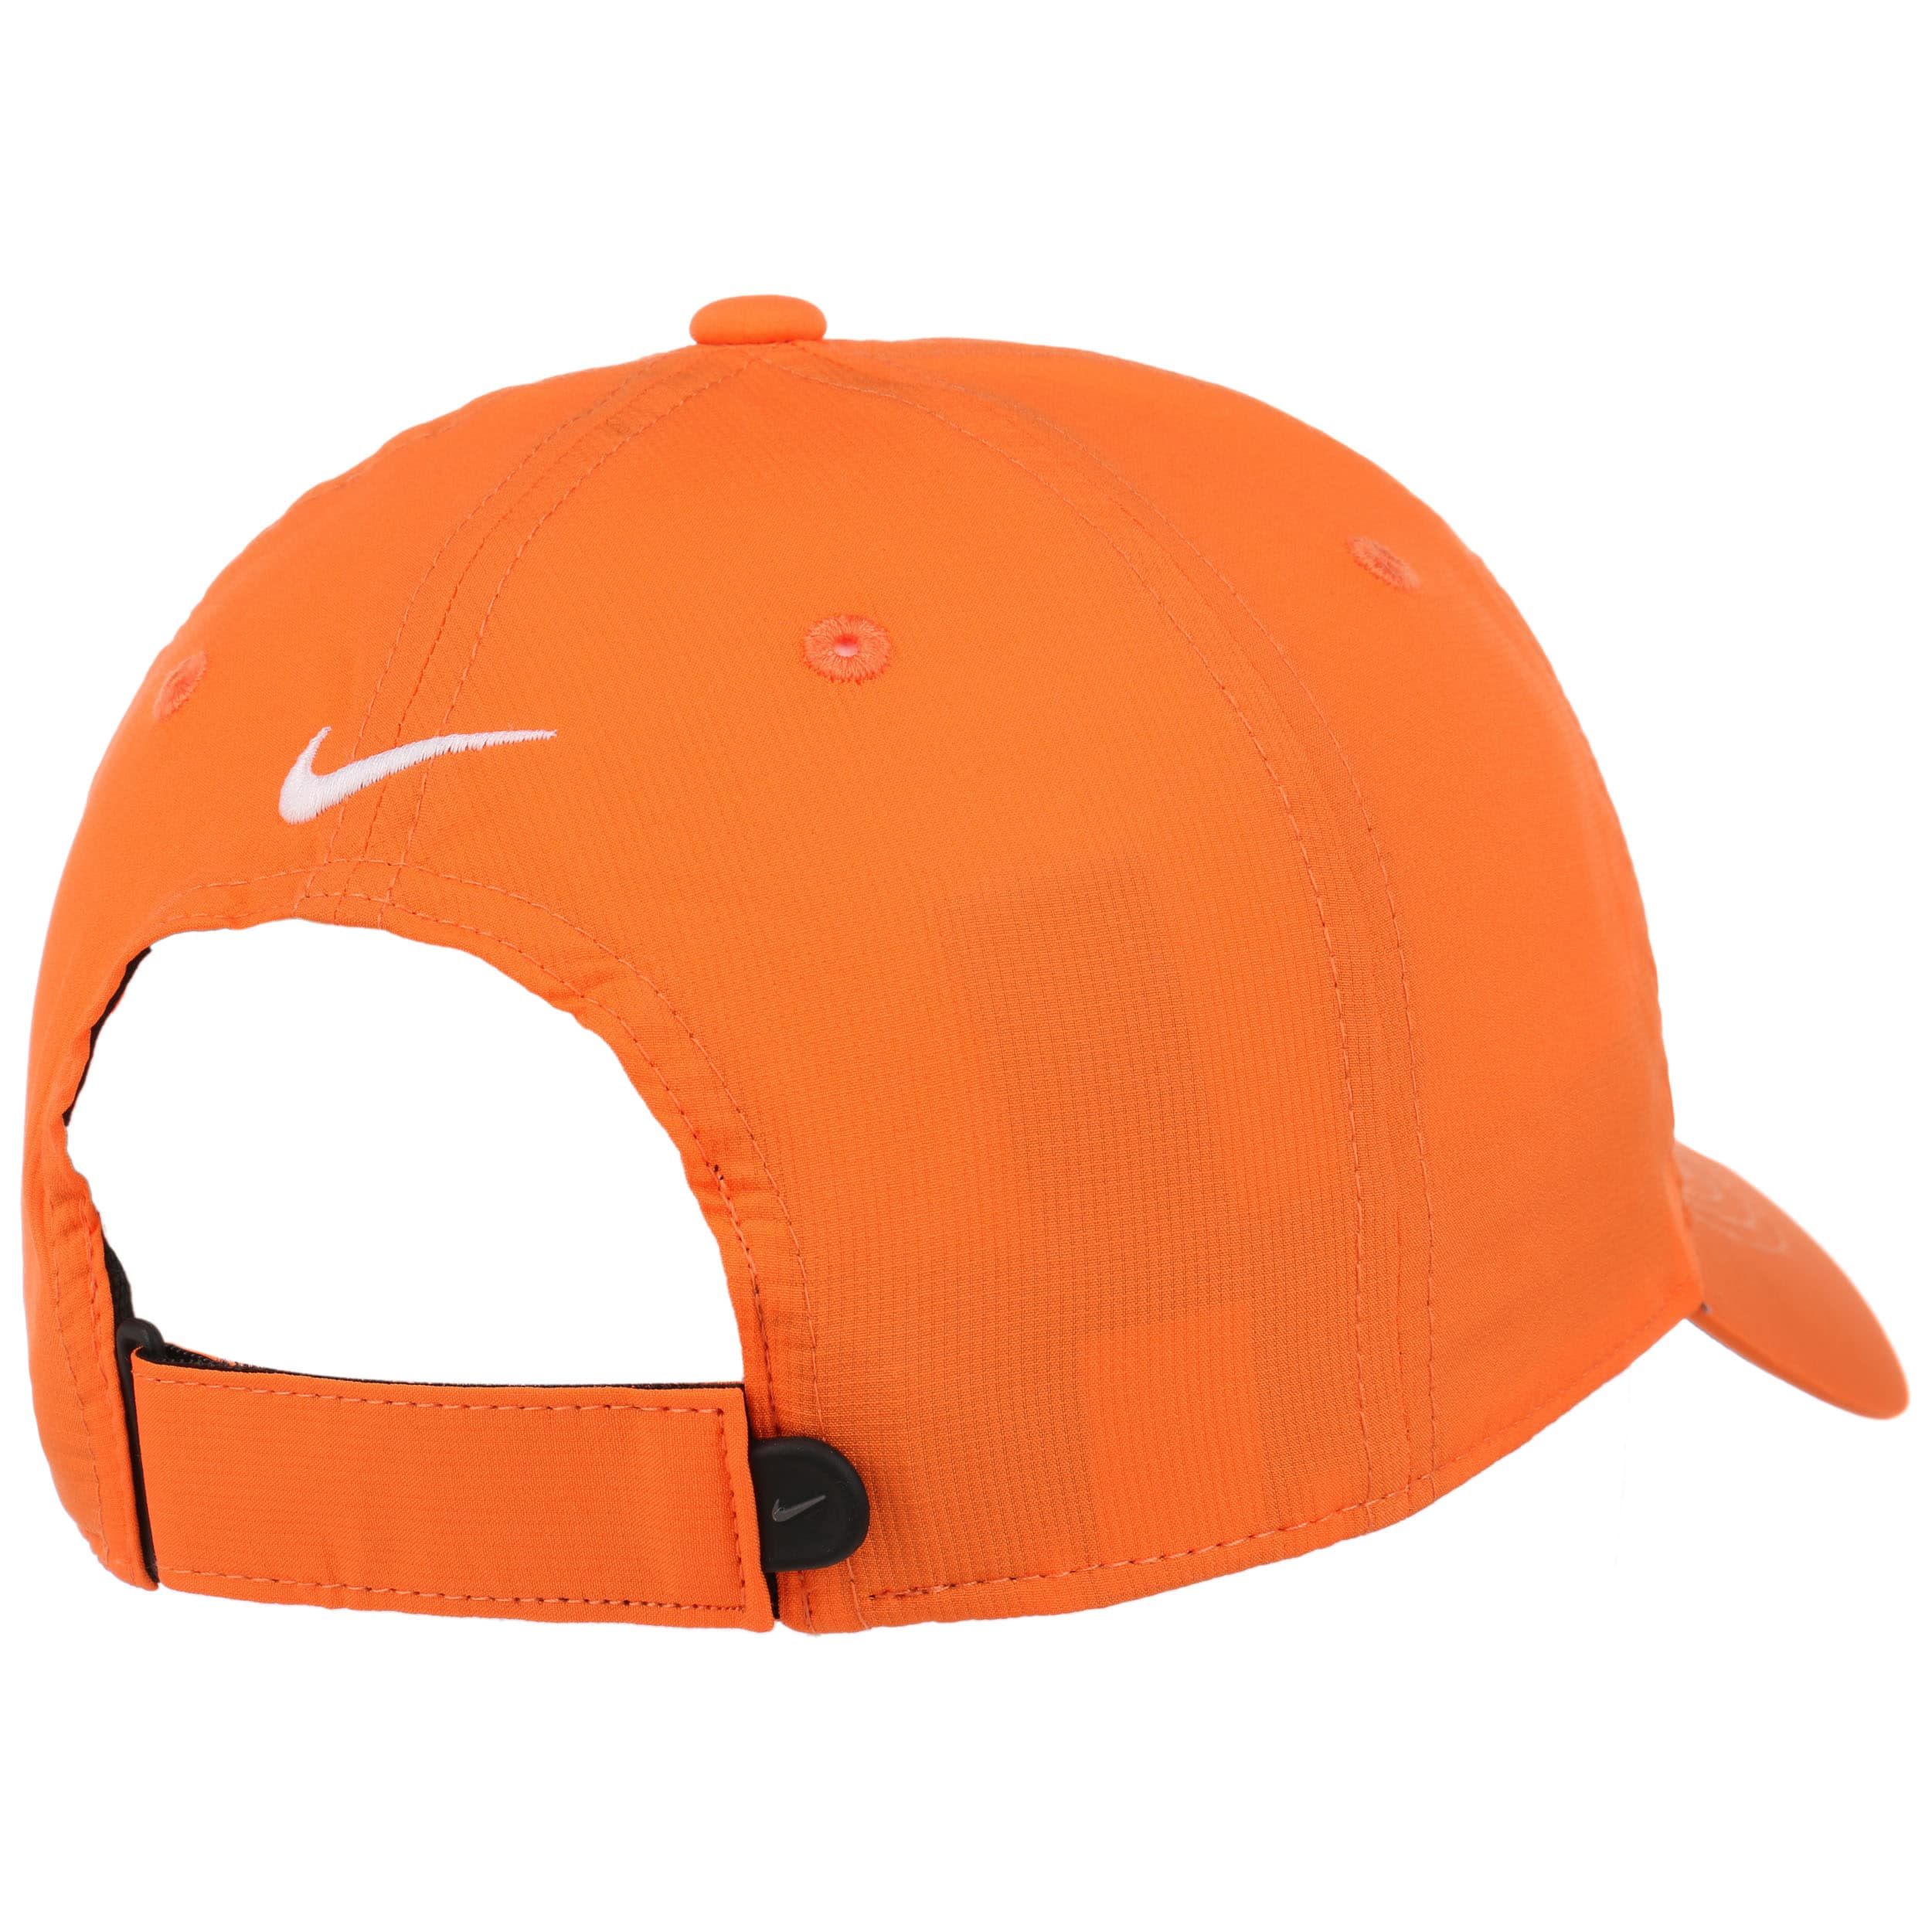 blanc 4 · Casquette Legacy91 Tech Cap by Nike orange 3